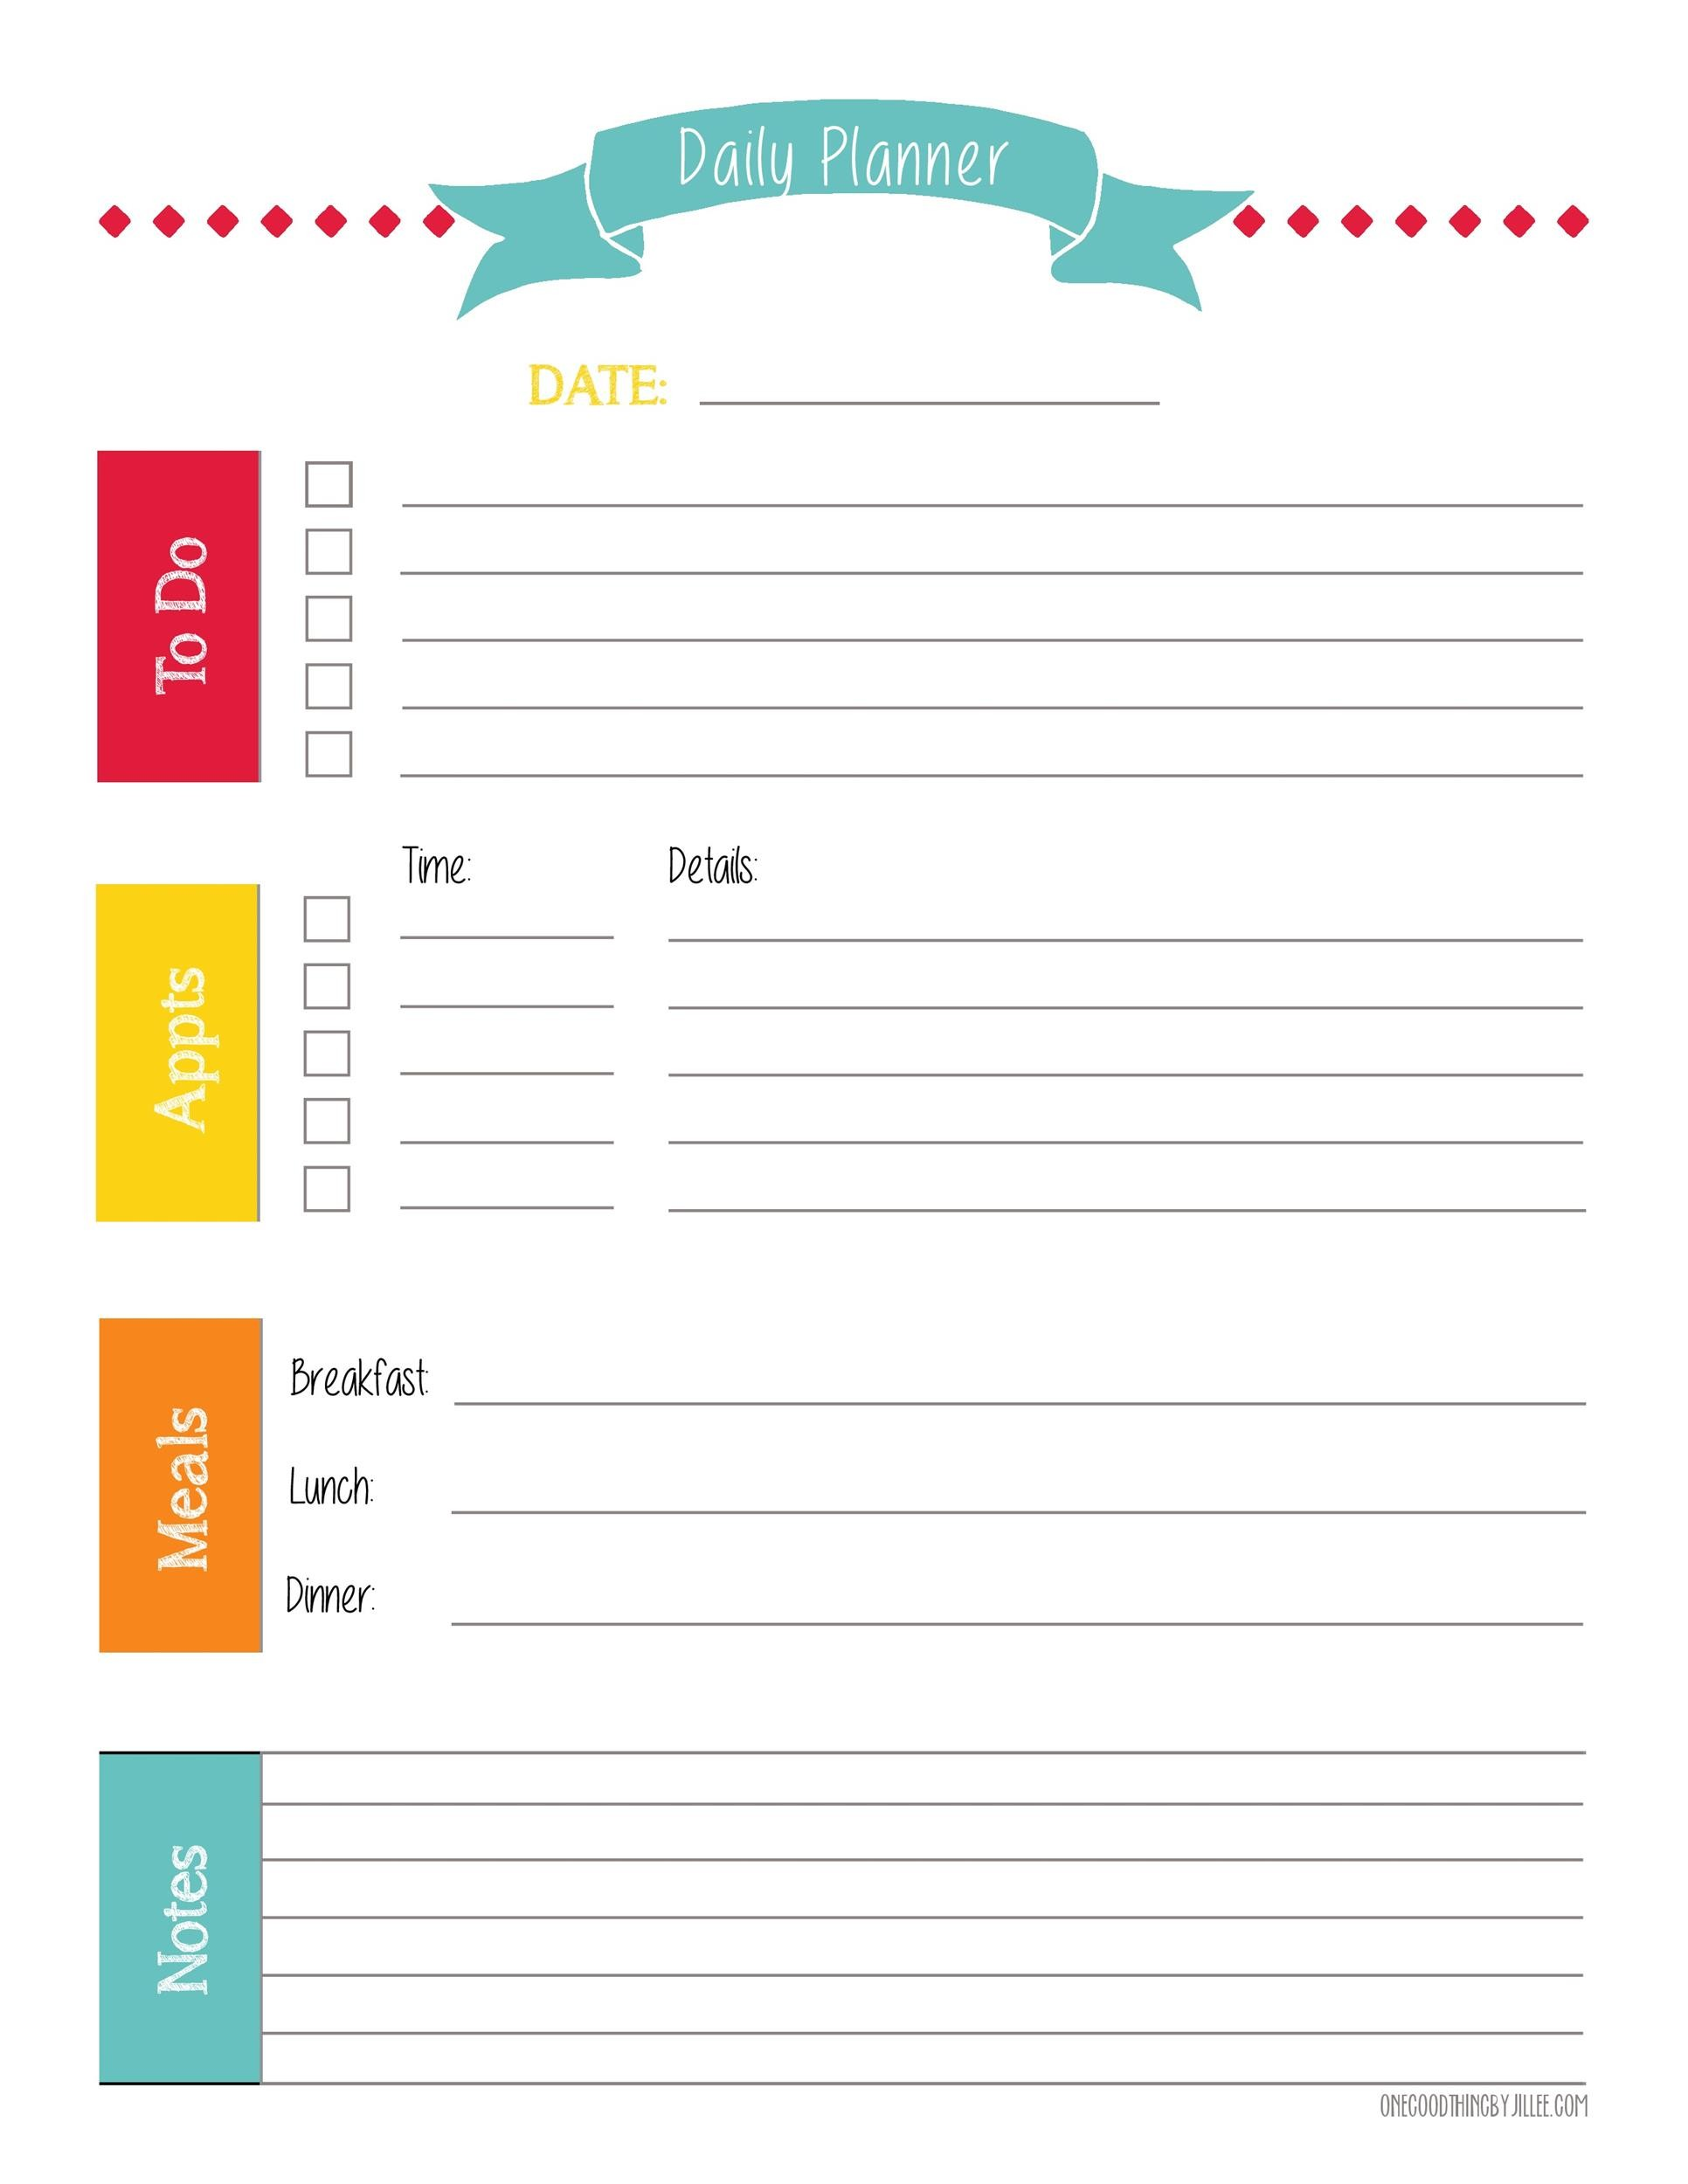 Free daily planner template 34